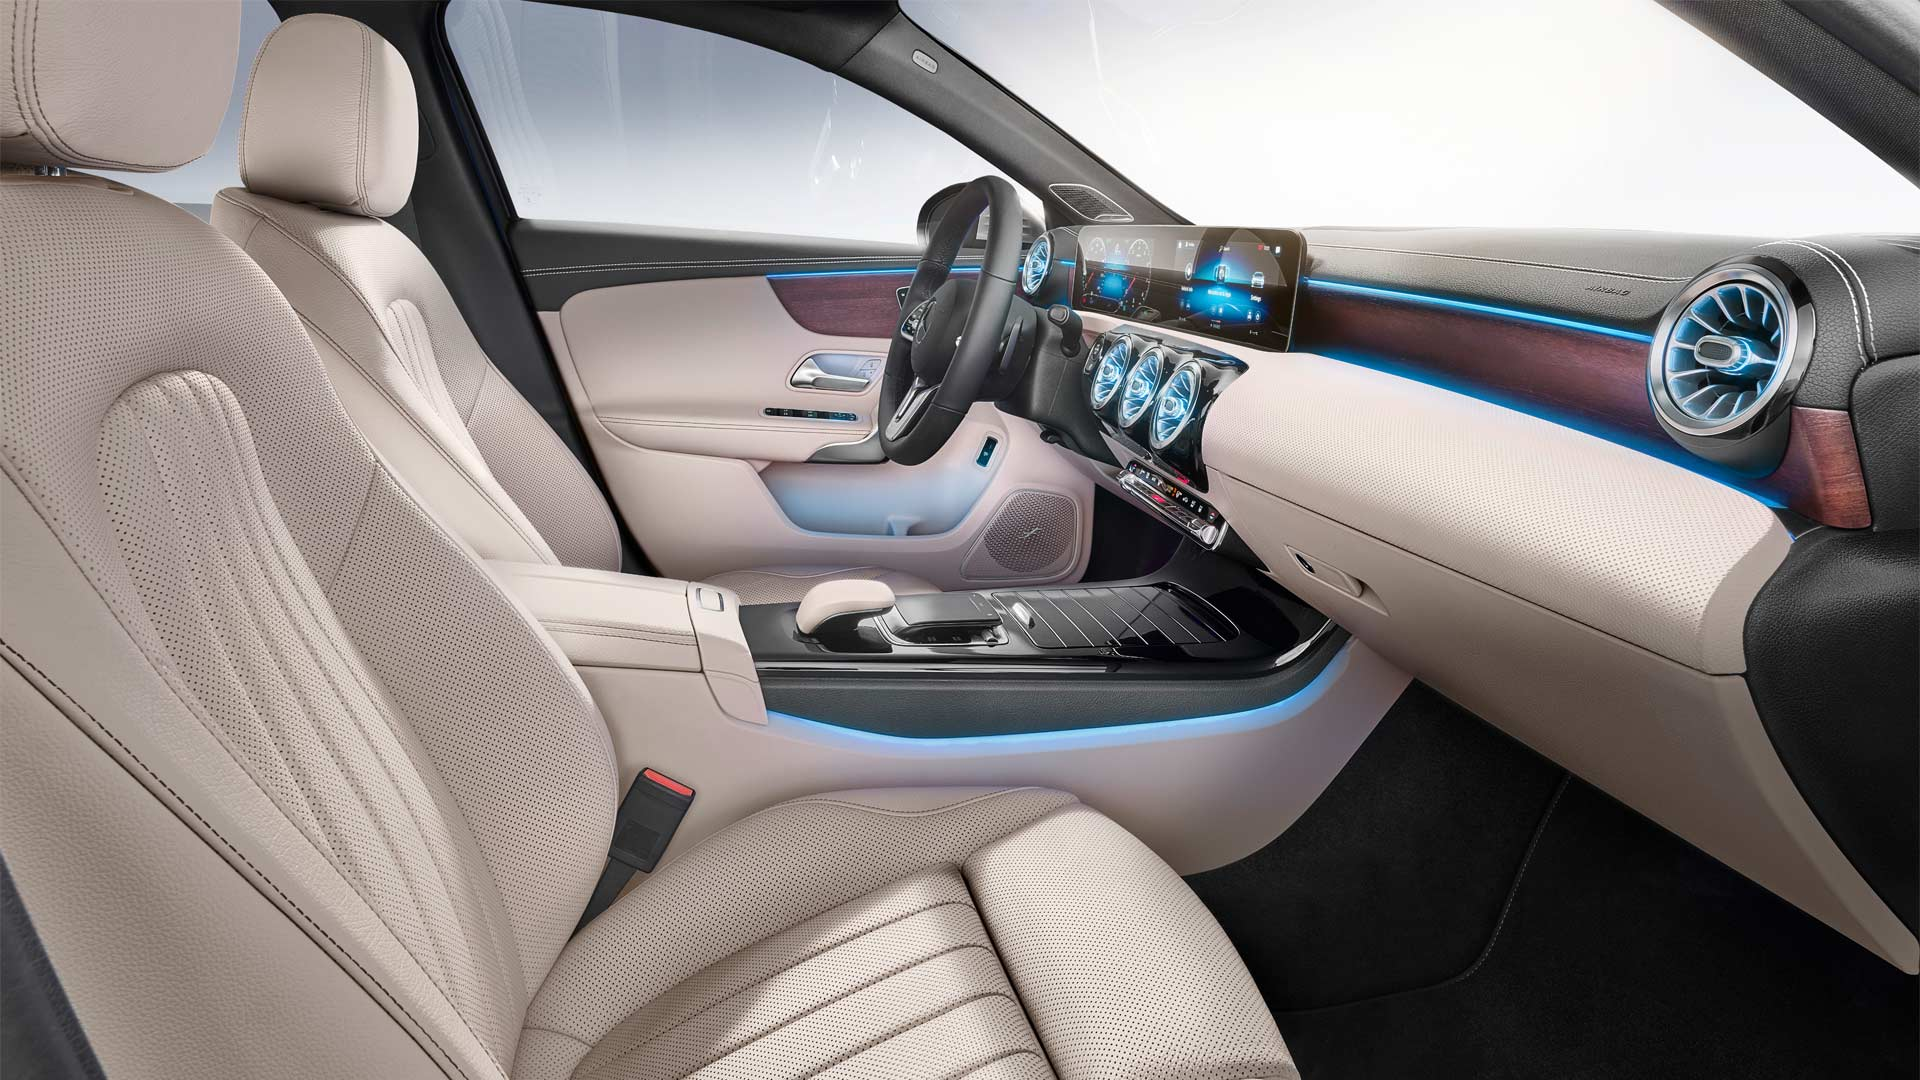 2019-Mercedes-Benz-A-Class-Sedan-interior_3